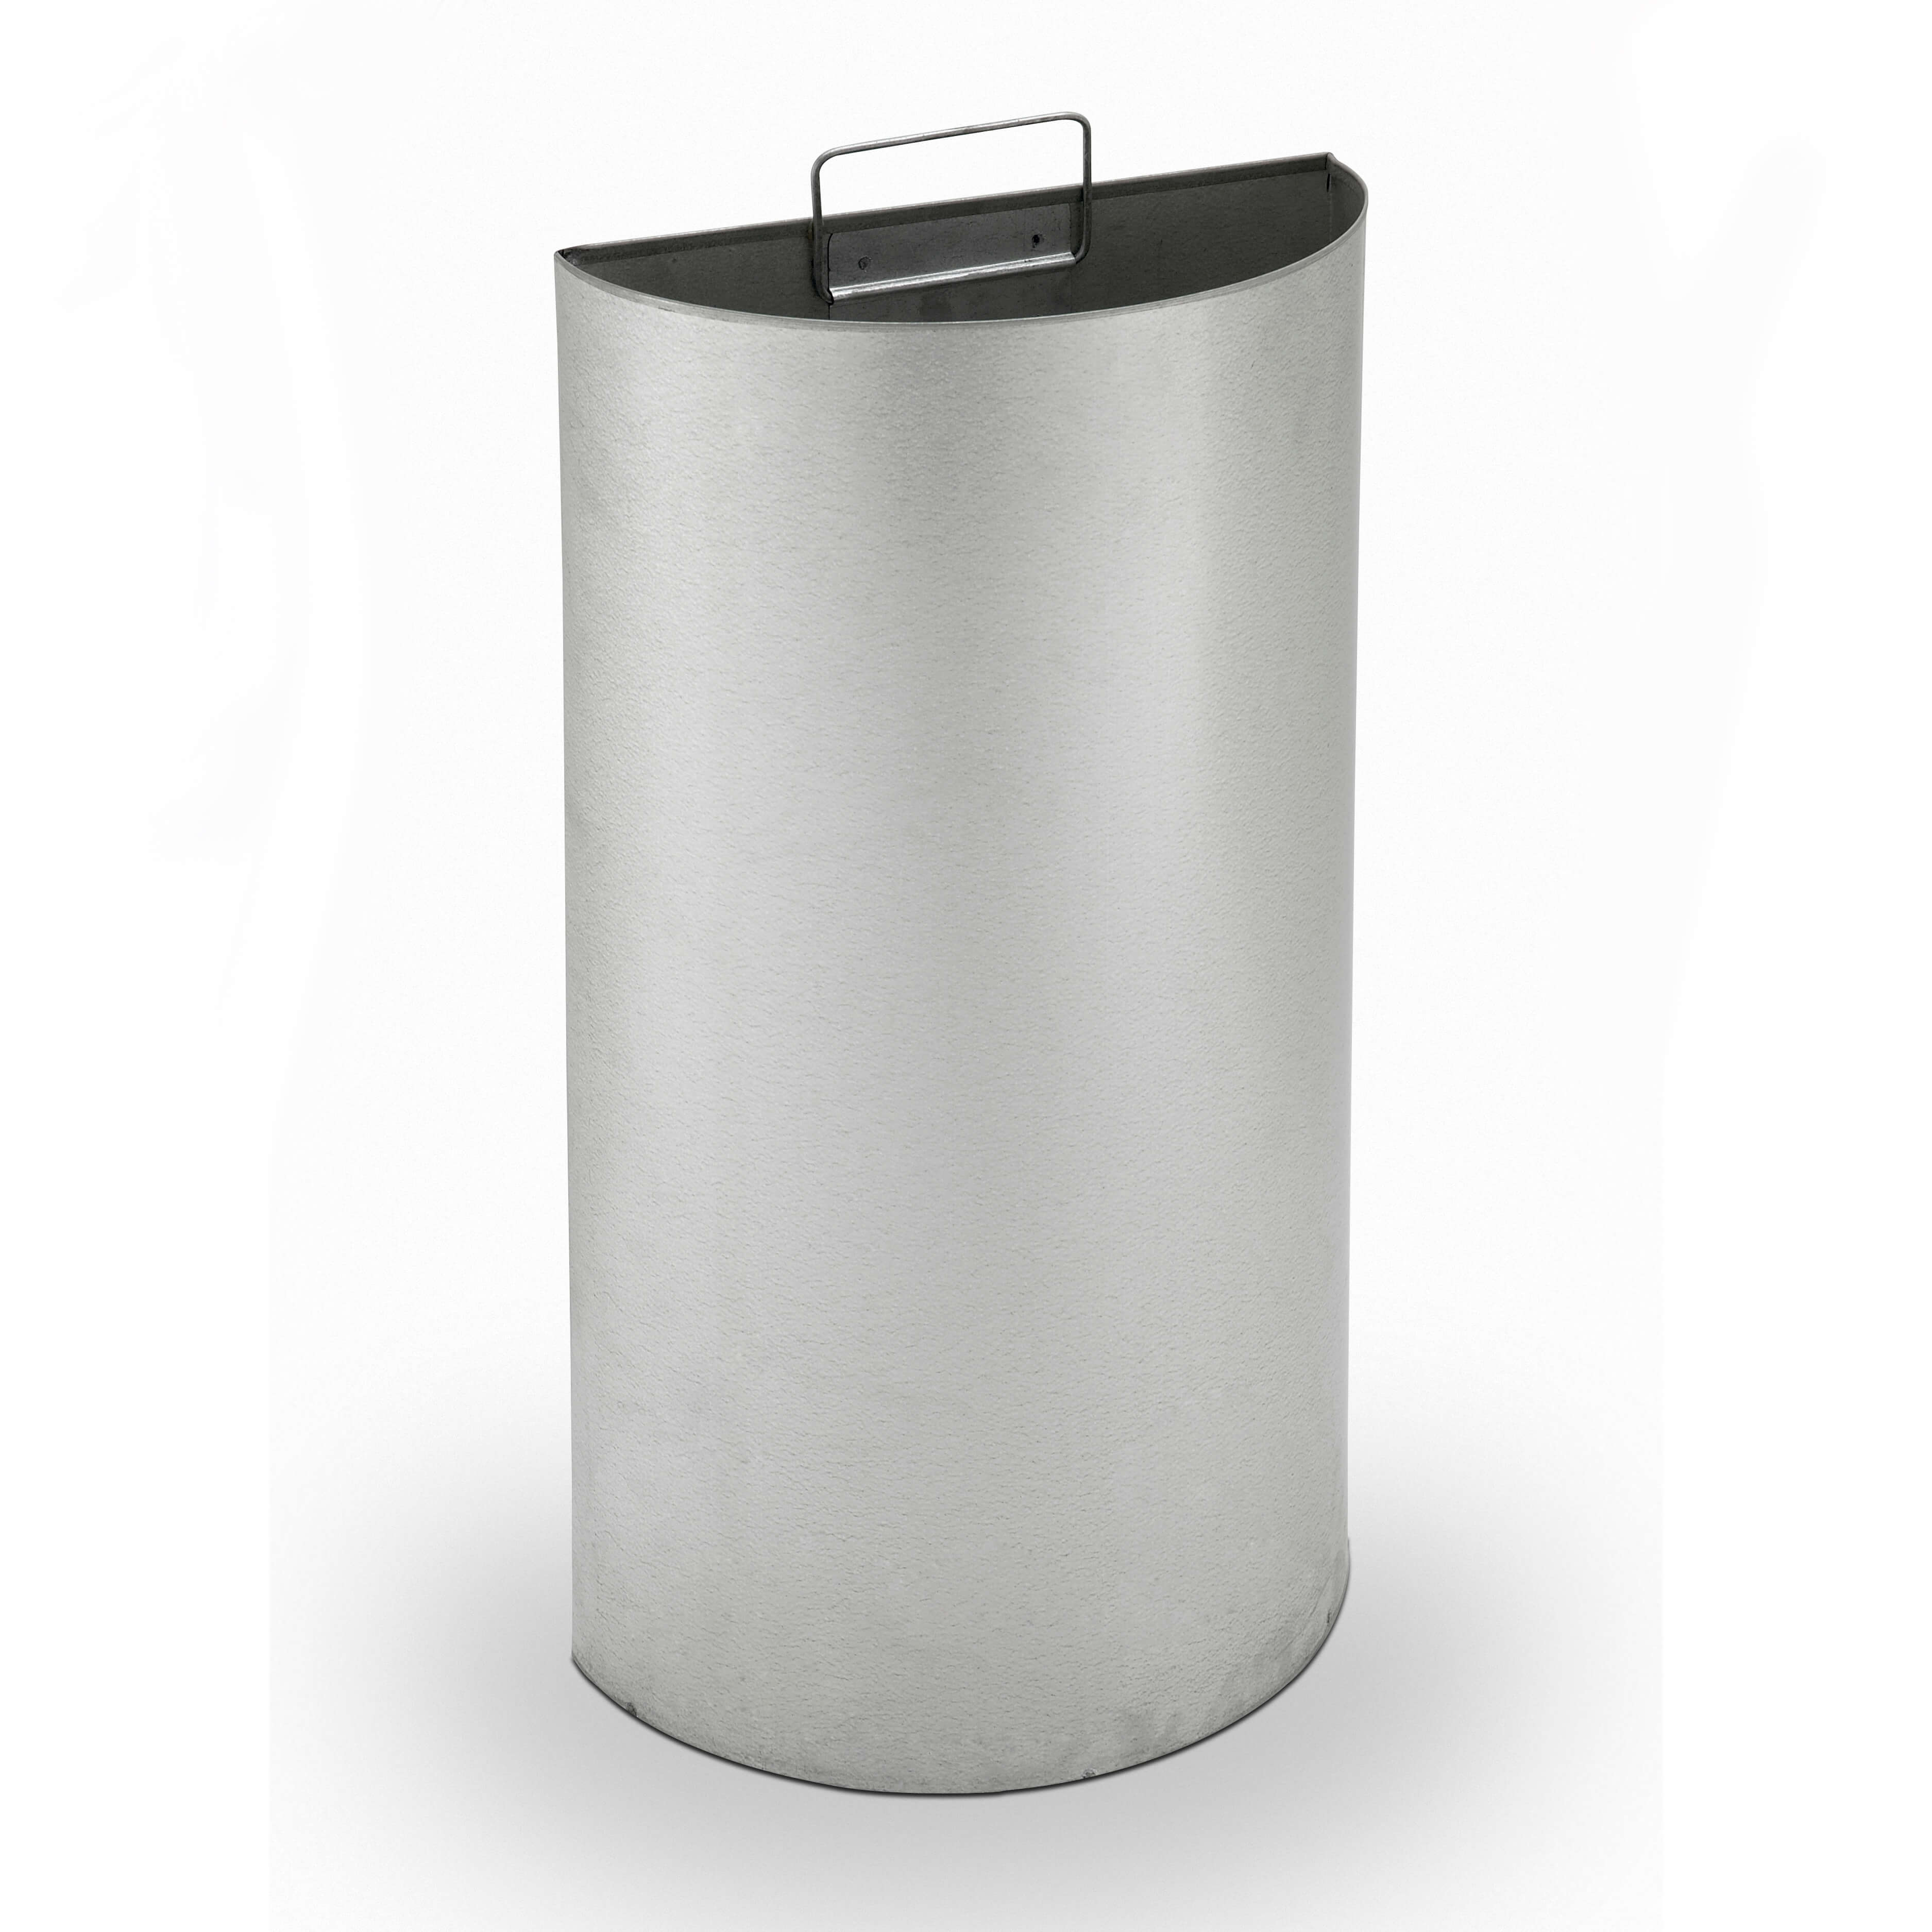 Stainless Steel Recycling Bins Stainless Steel Recycler